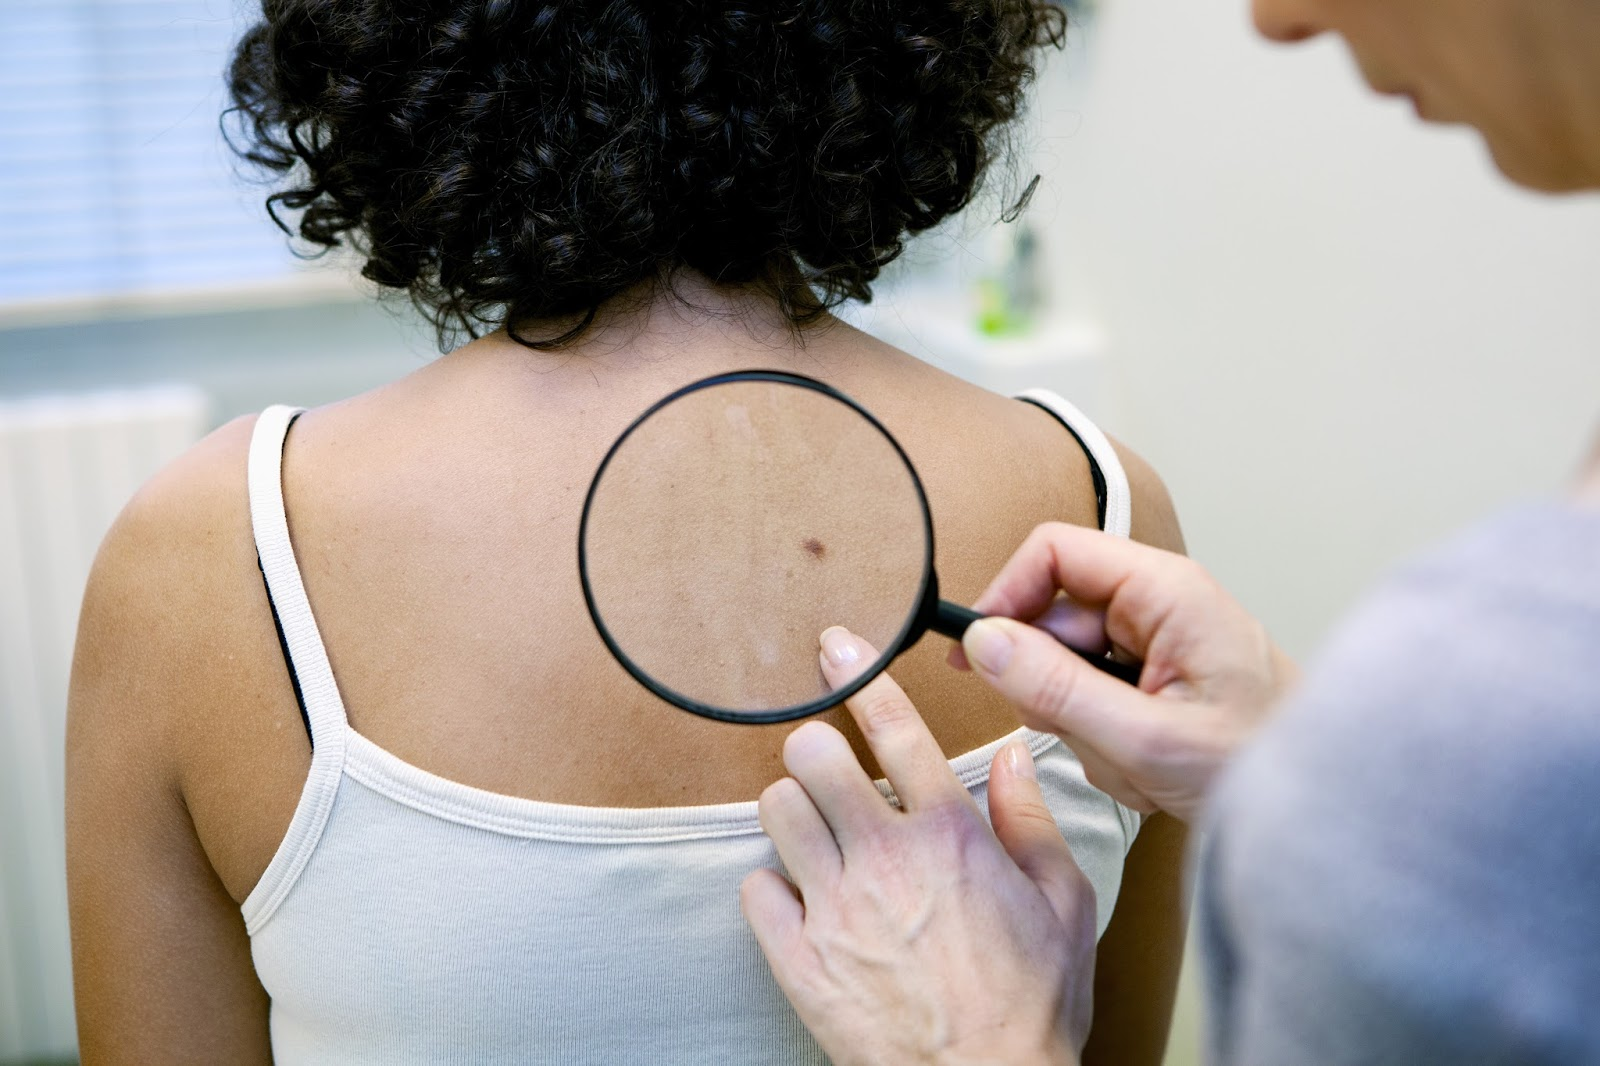 Doctor examines a patient's skin for potential skin cancer